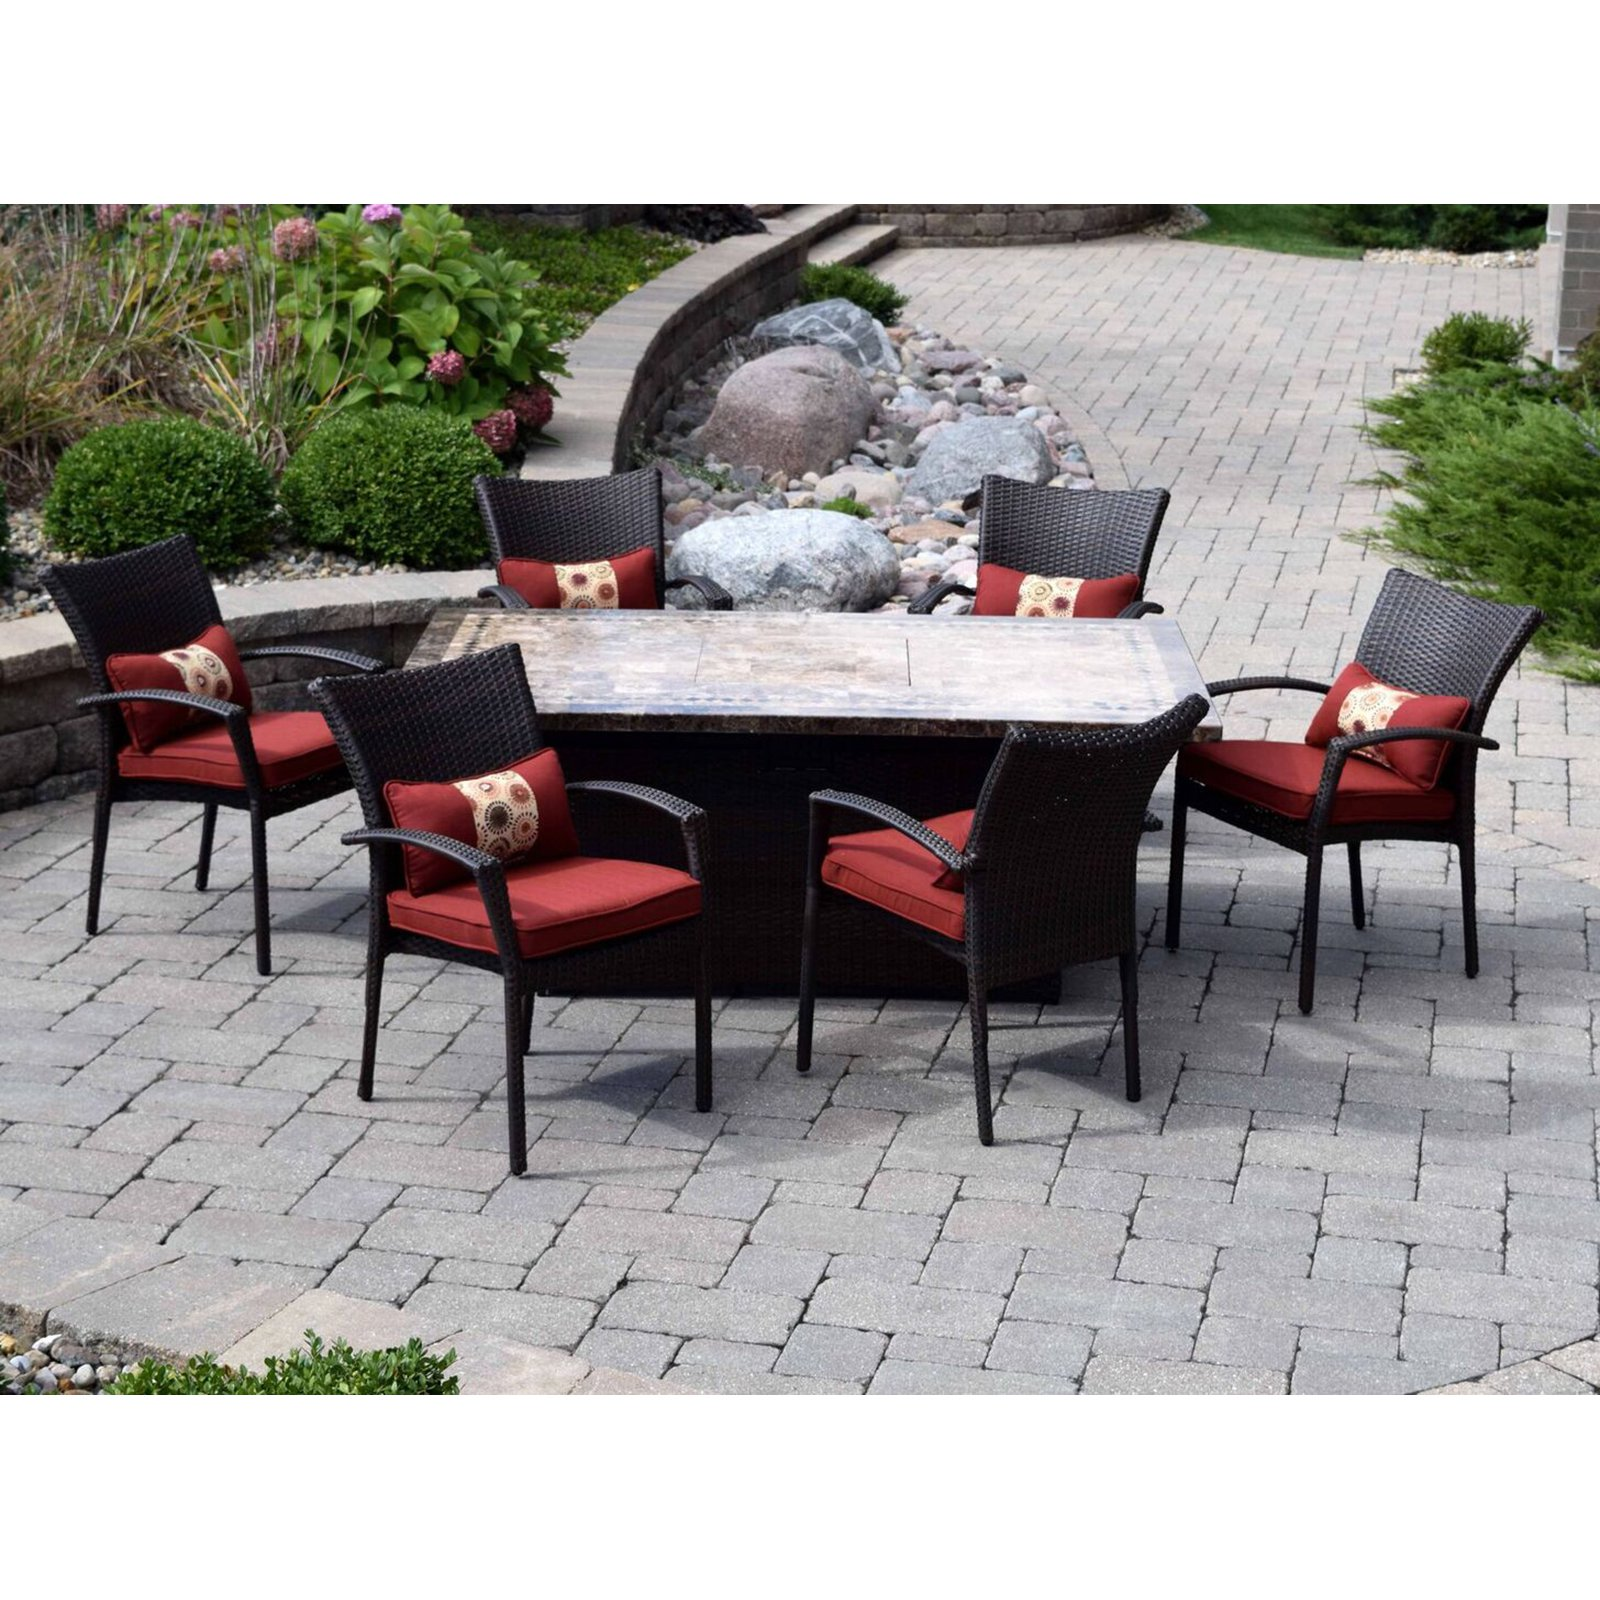 Outdoor Innovations South Beach Wicker Fire Pit Chat Set